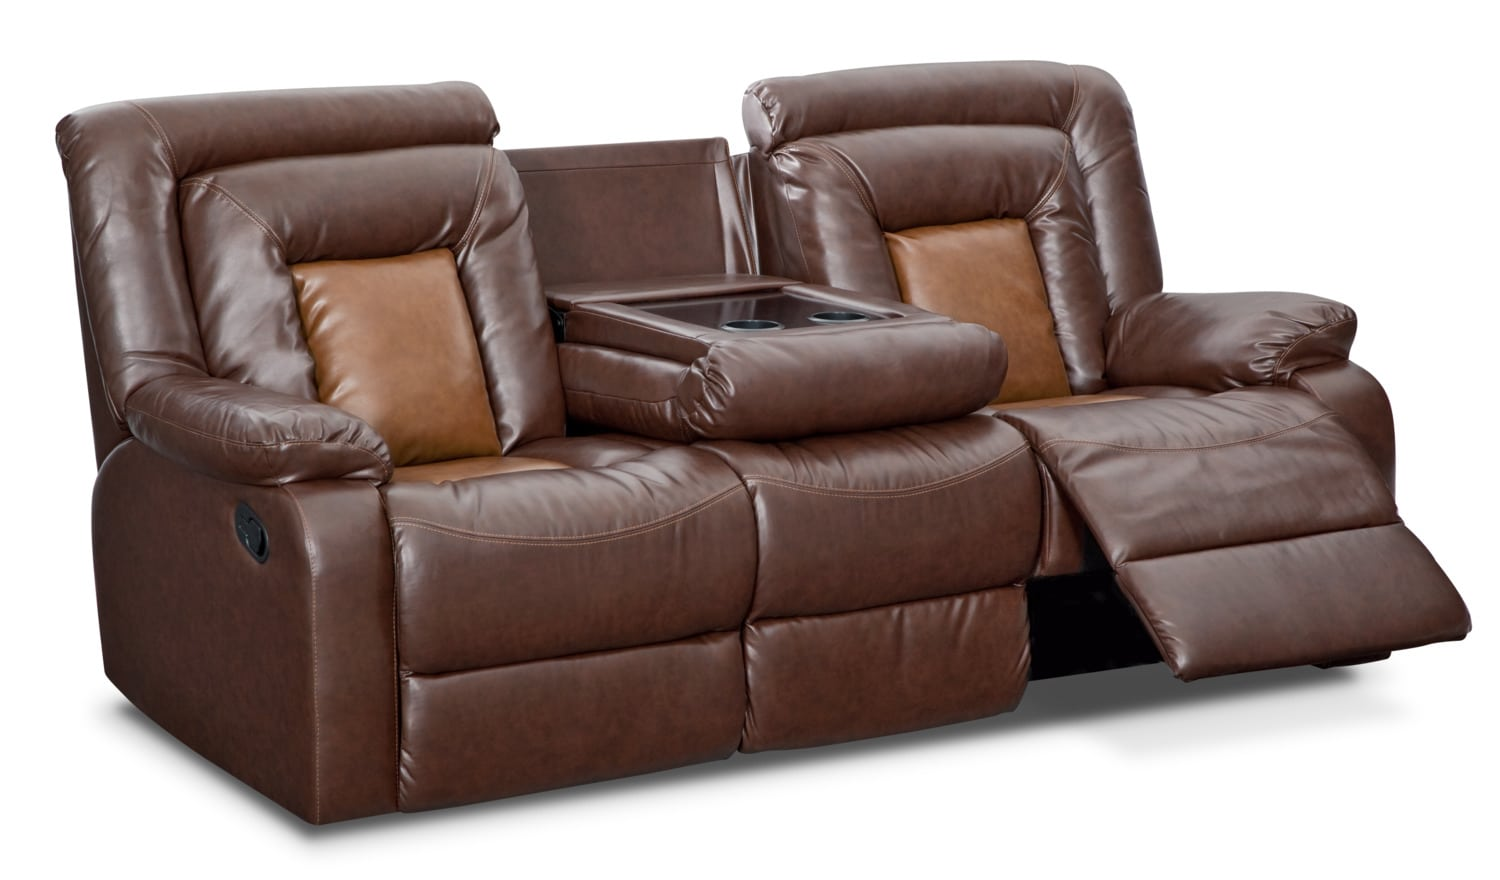 Mustang dual reclining sofa with console brown american signature furniture Loveseats with console